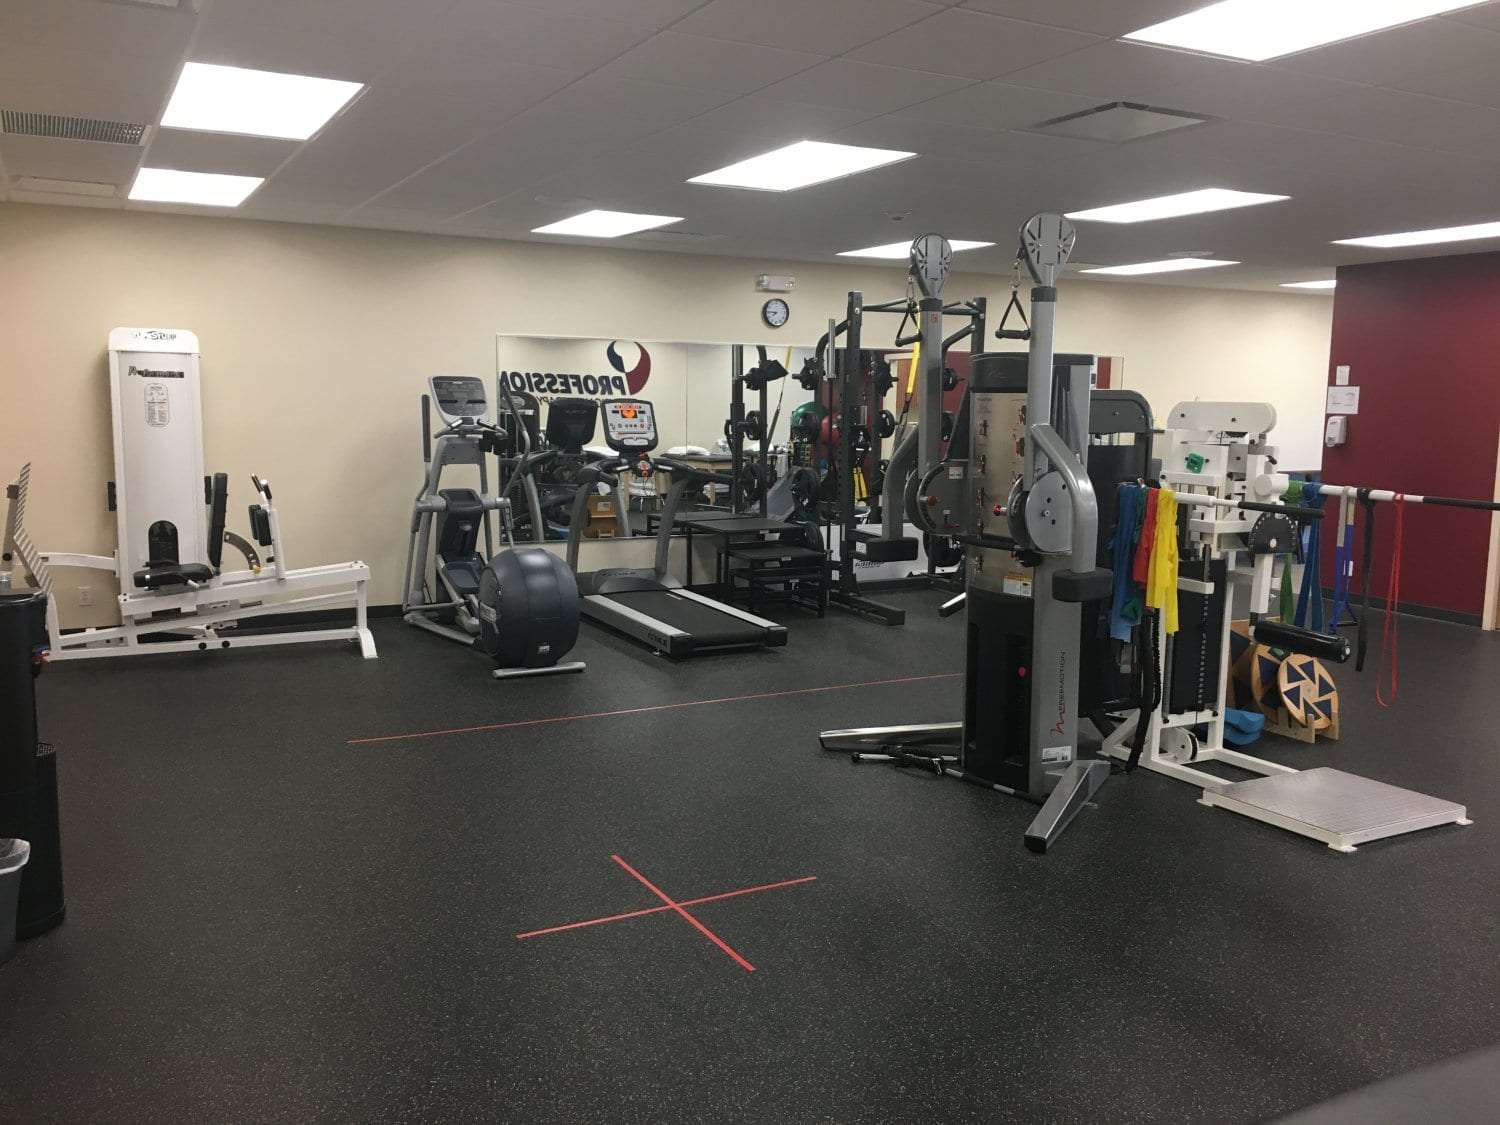 An image of the interior of our physical therapy clinic in Katonah, New York. This photo shows the various pieces of equipment used for training.